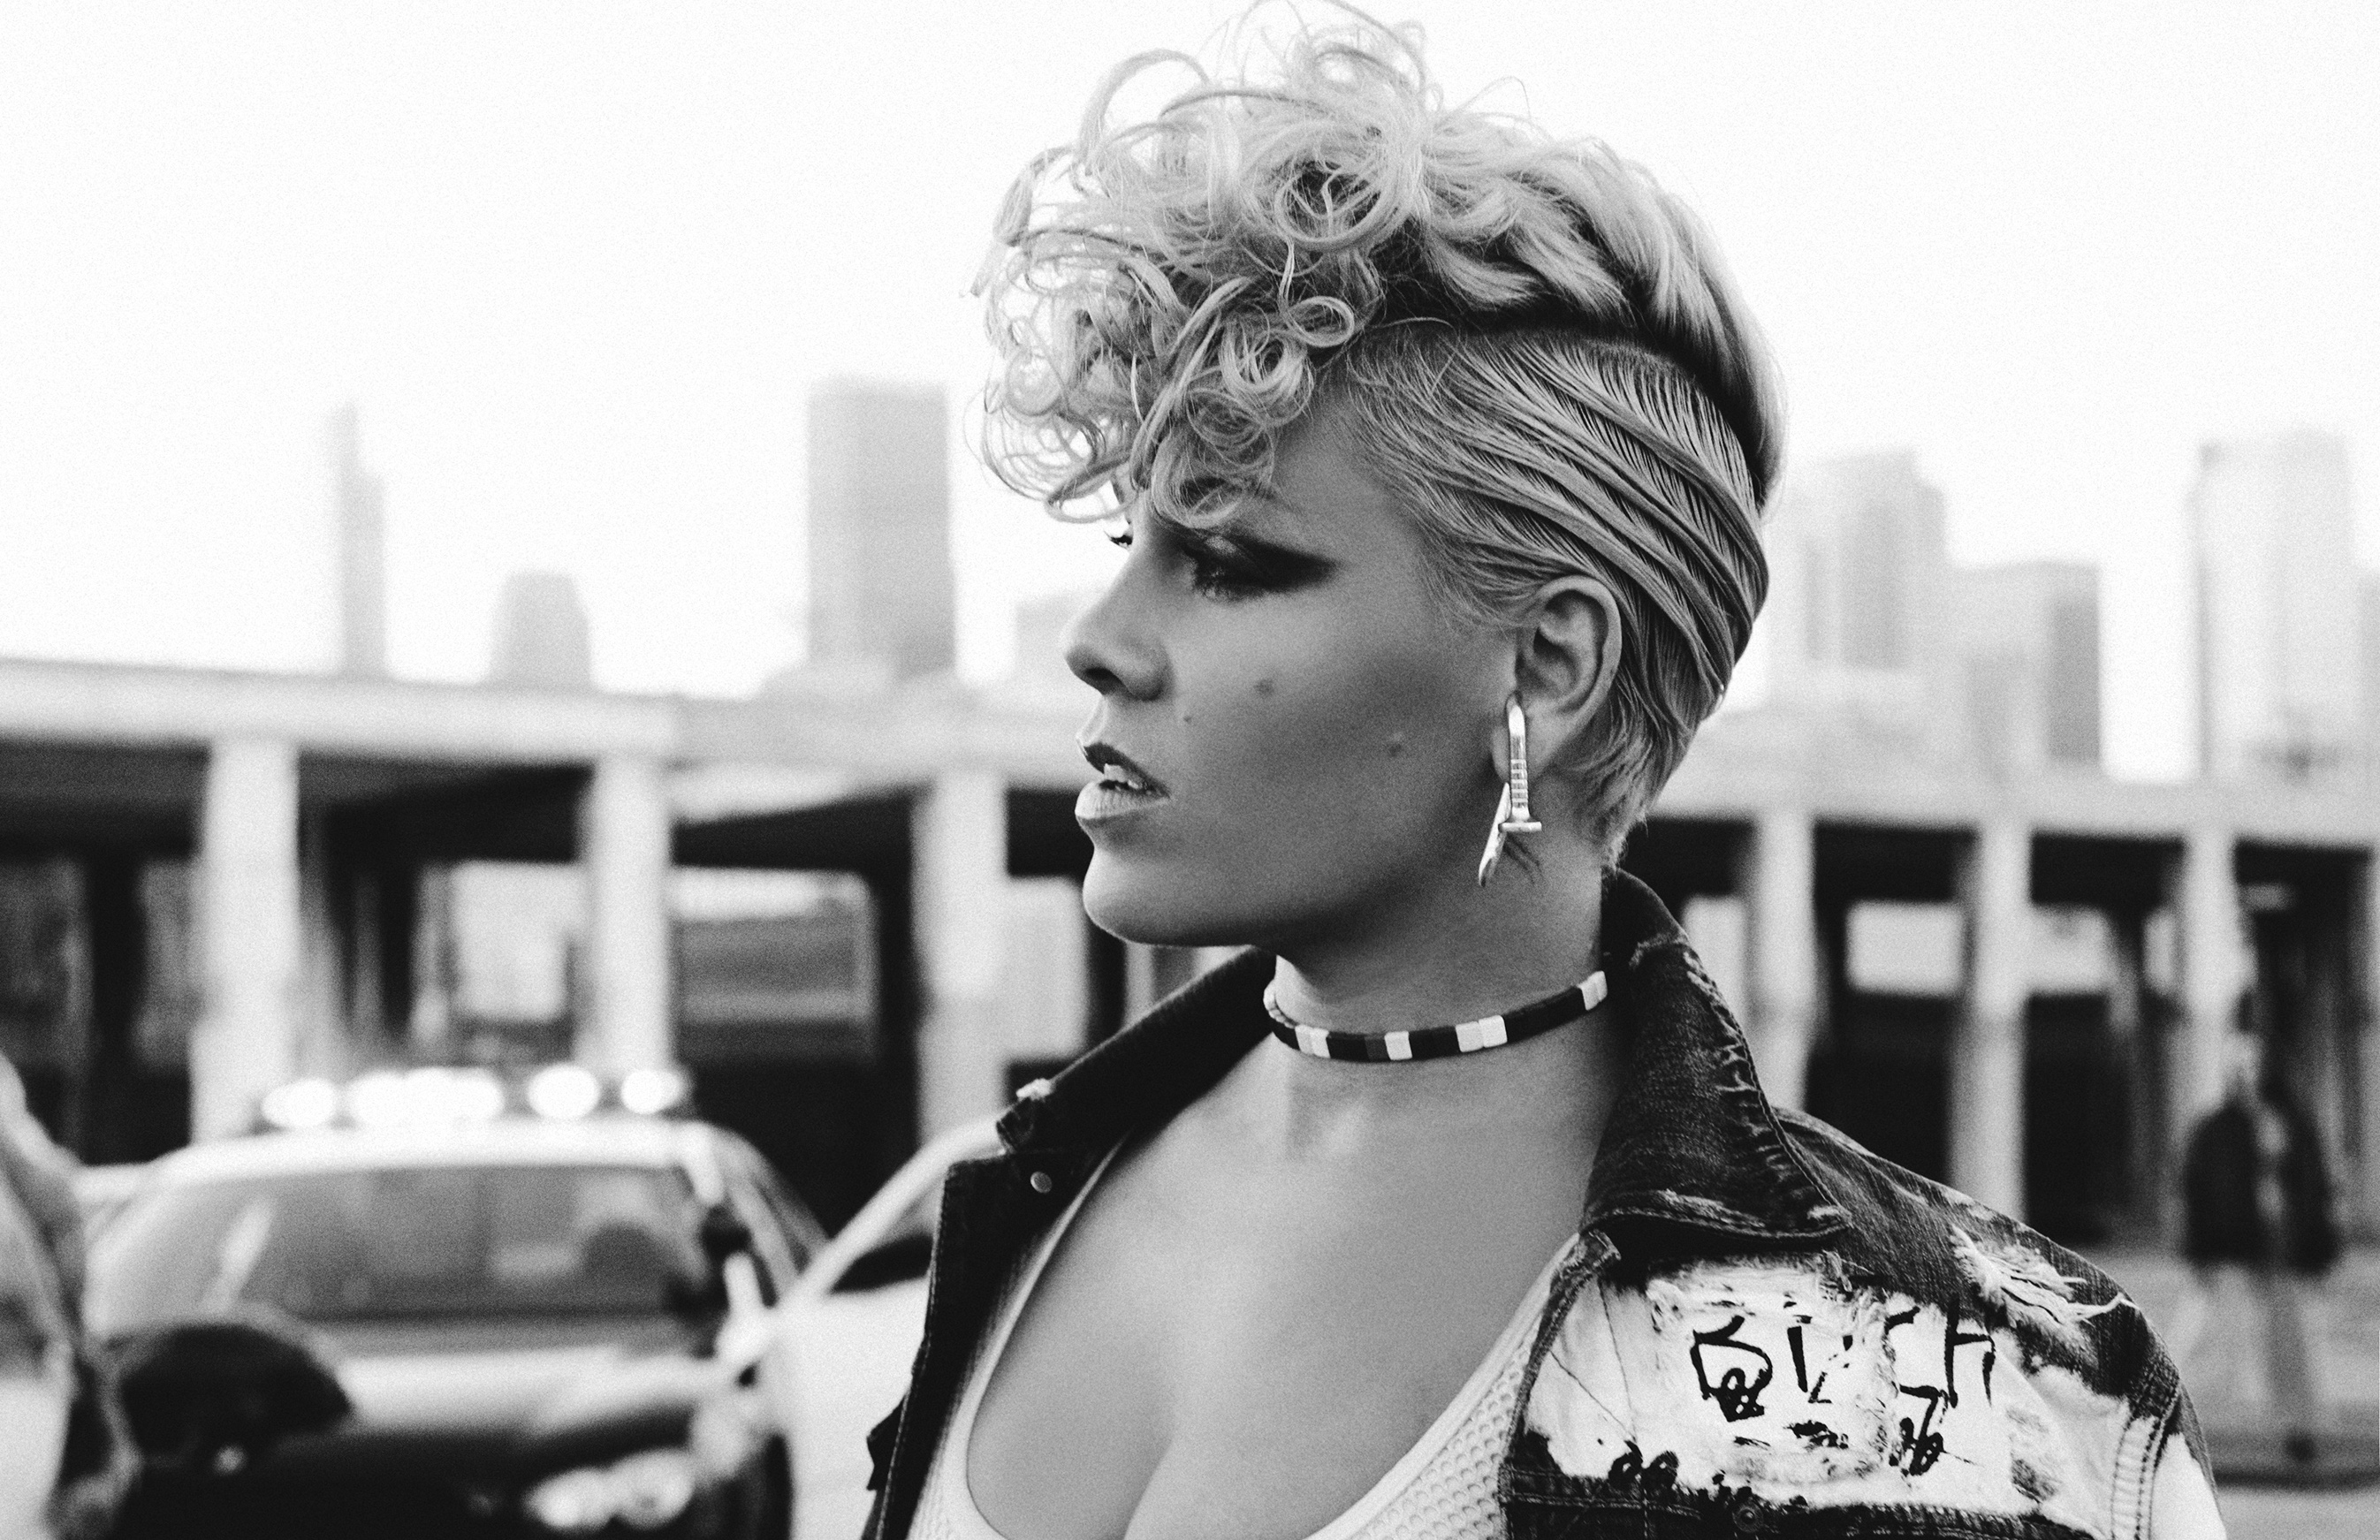 P!NK Announces Beautiful Trauma World Tour Australia & New Zealand 2018